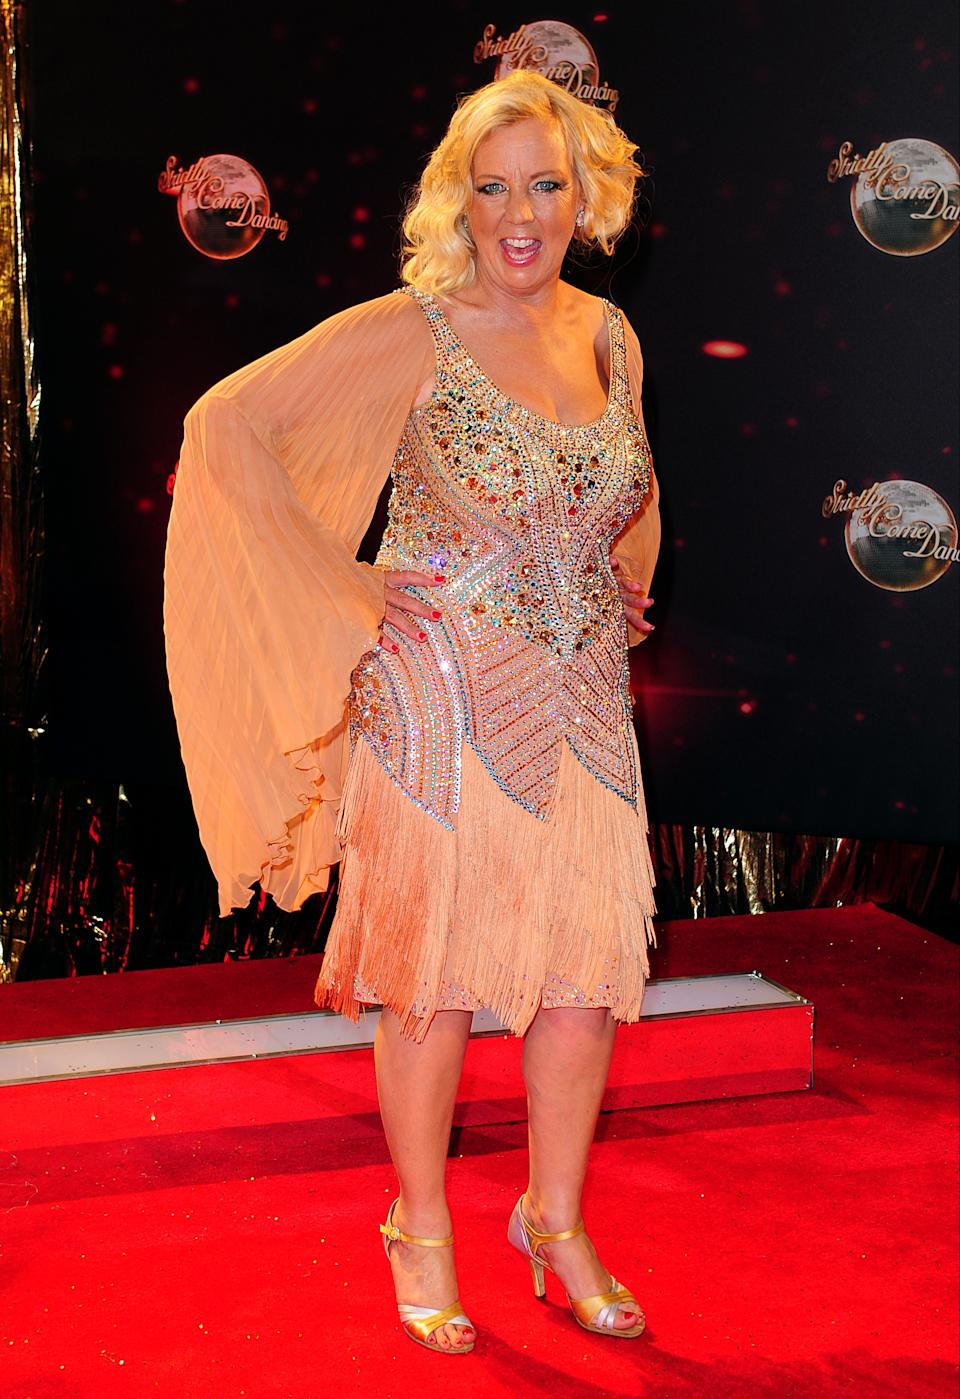 Deborah Meaden arriving for the Strictly Come Dancing Photocall at Elstree Studios, London.   (Photo by Ian West/PA Images via Getty Images)